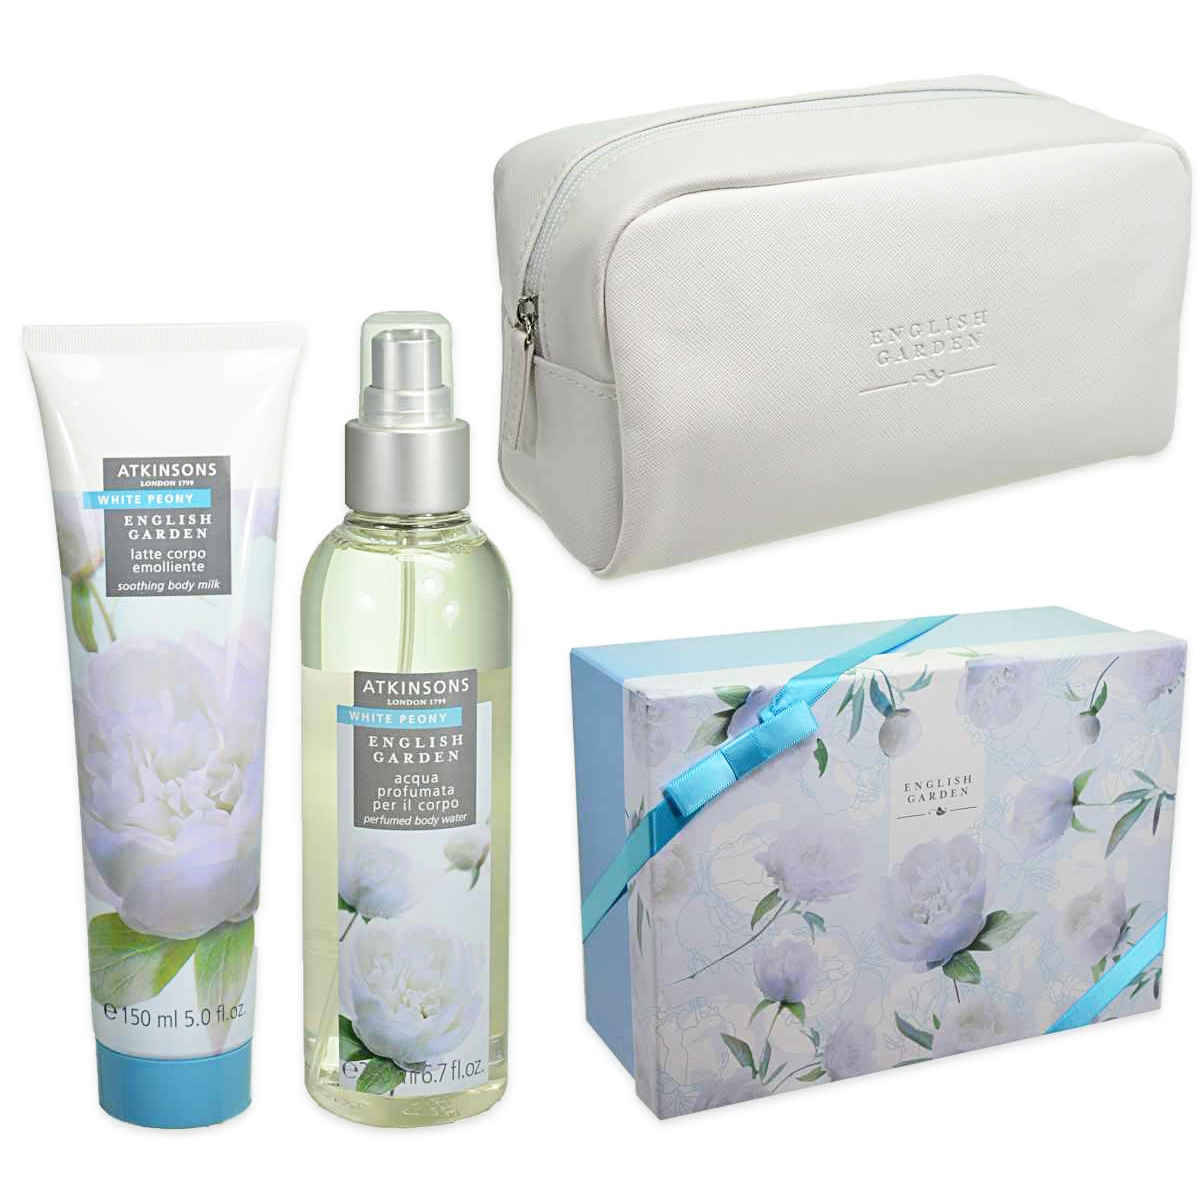 Atkinsons  Cofanetto english garden white peony  body water 200 ml  body lotion 150 ml  pouch